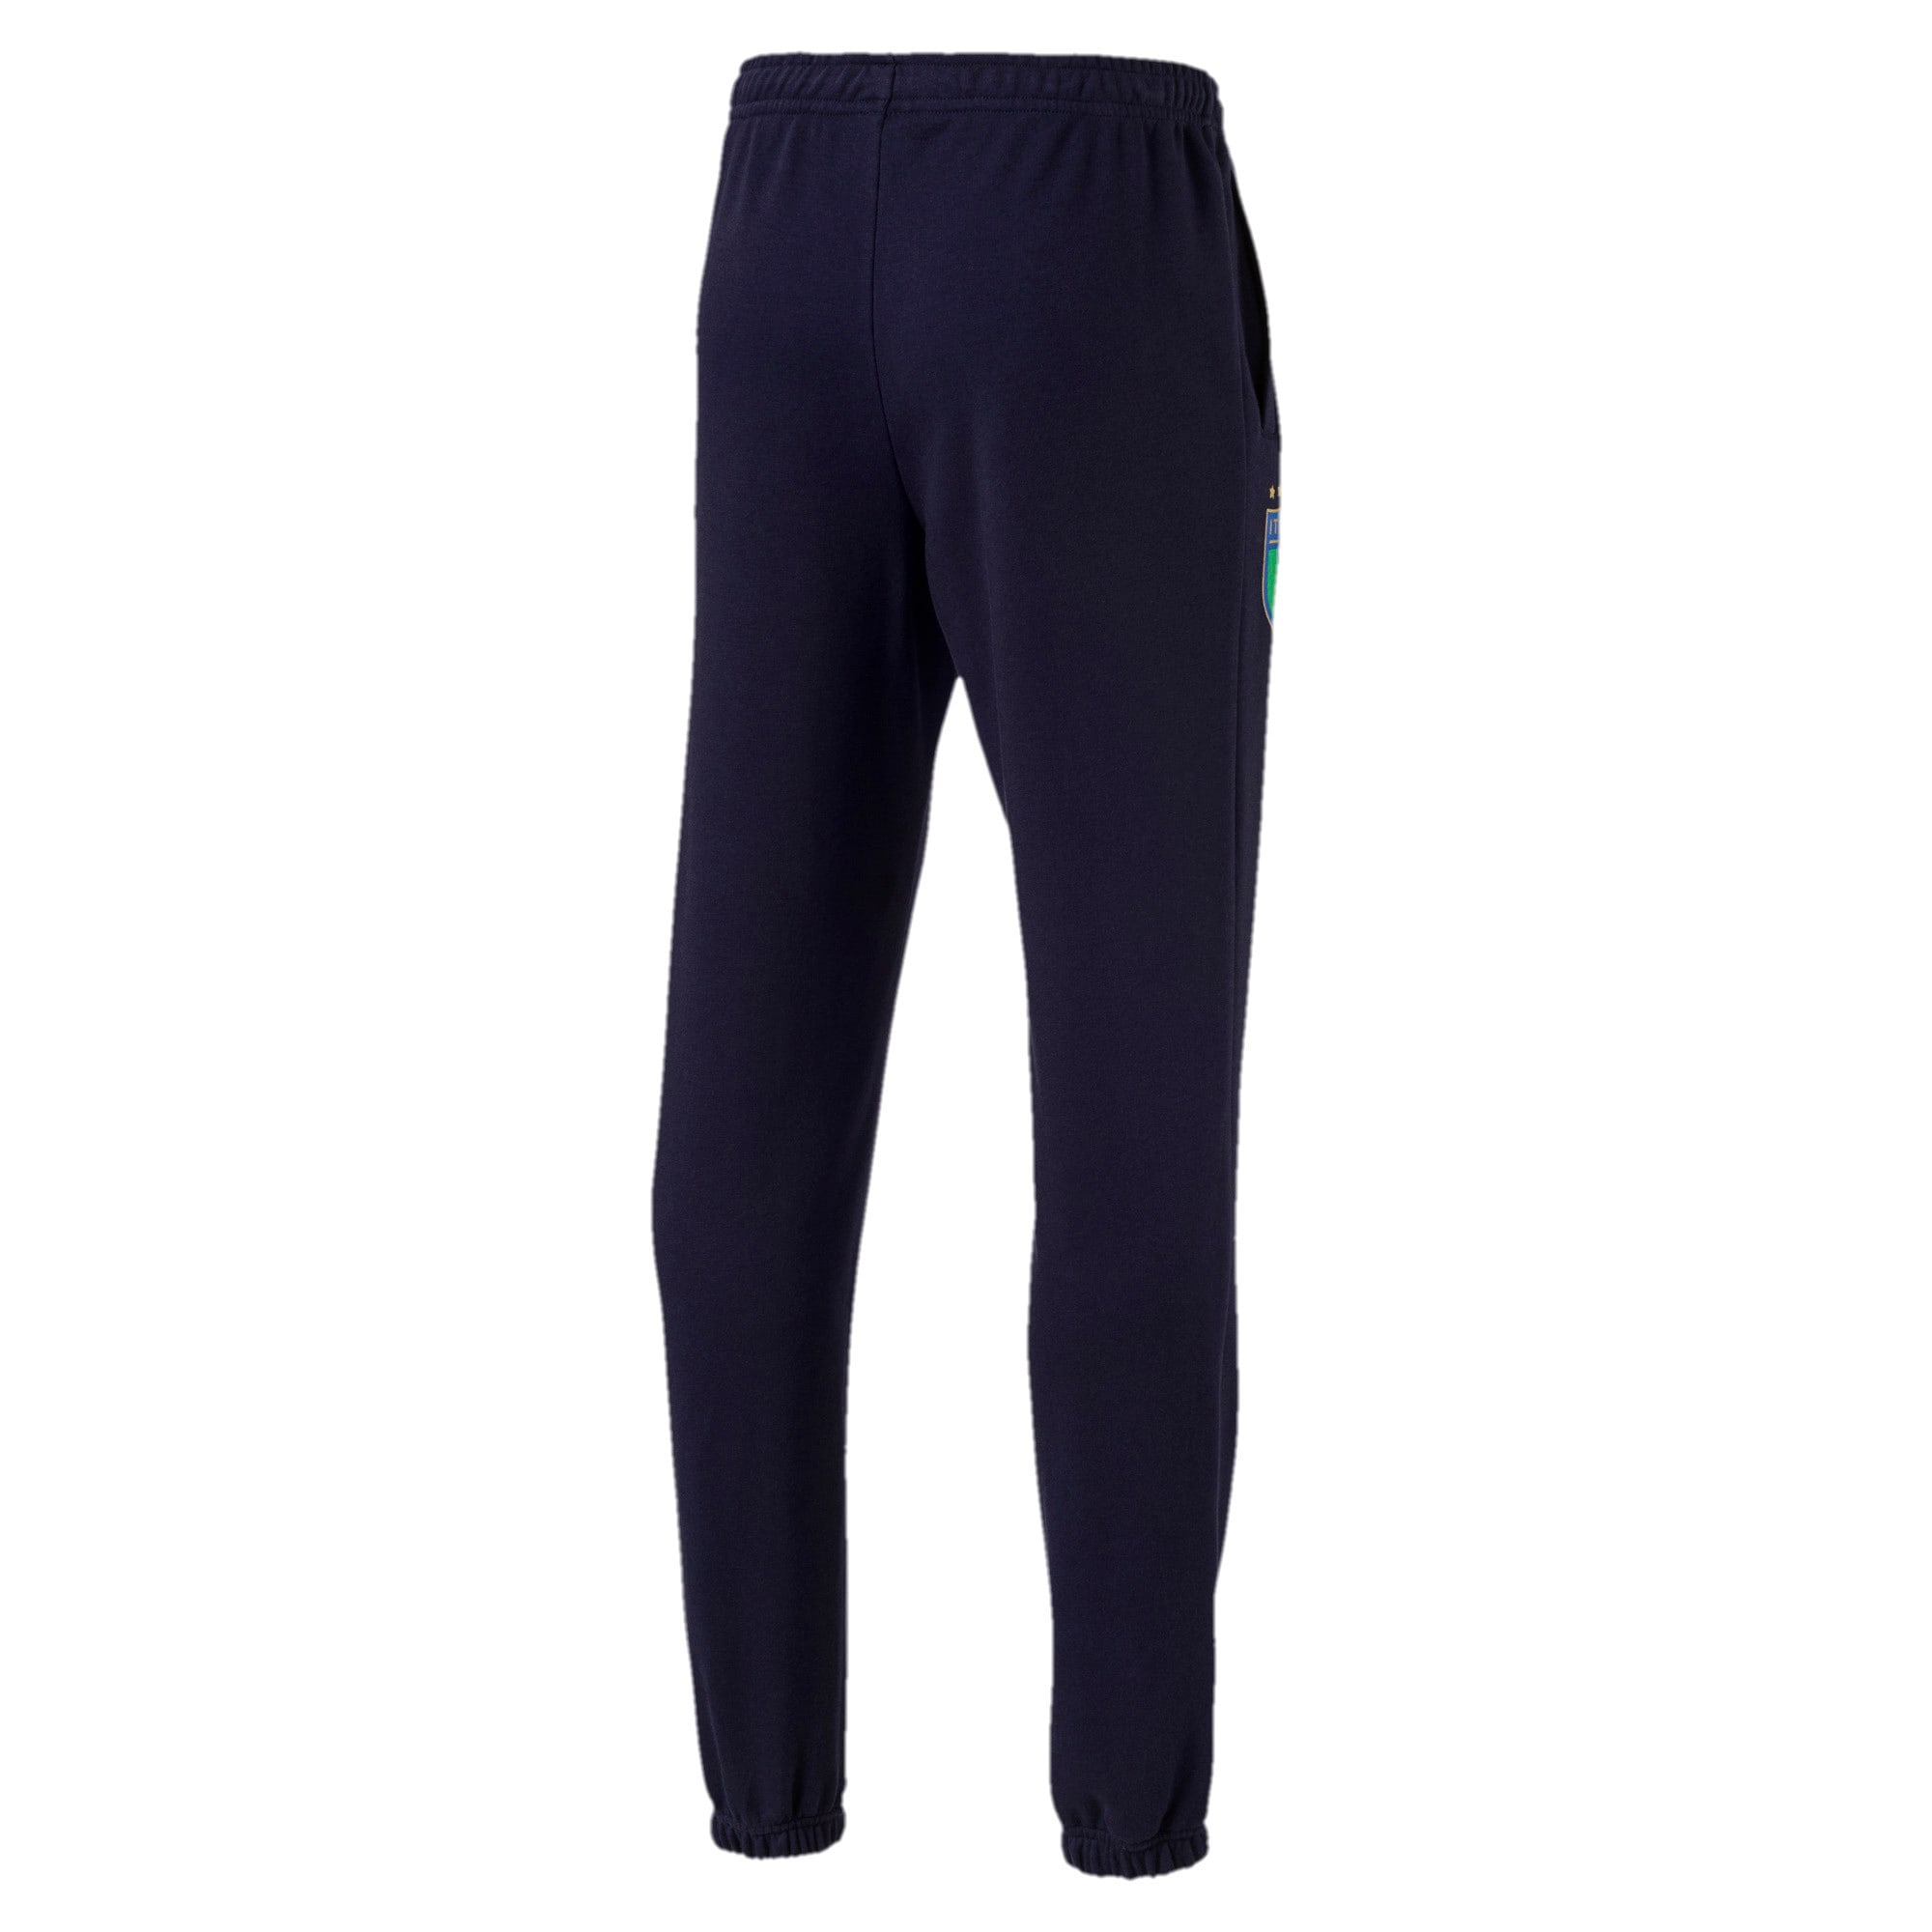 Thumbnail 4 of FIGC Men's Italia Sweat Pants, Peacoat, medium